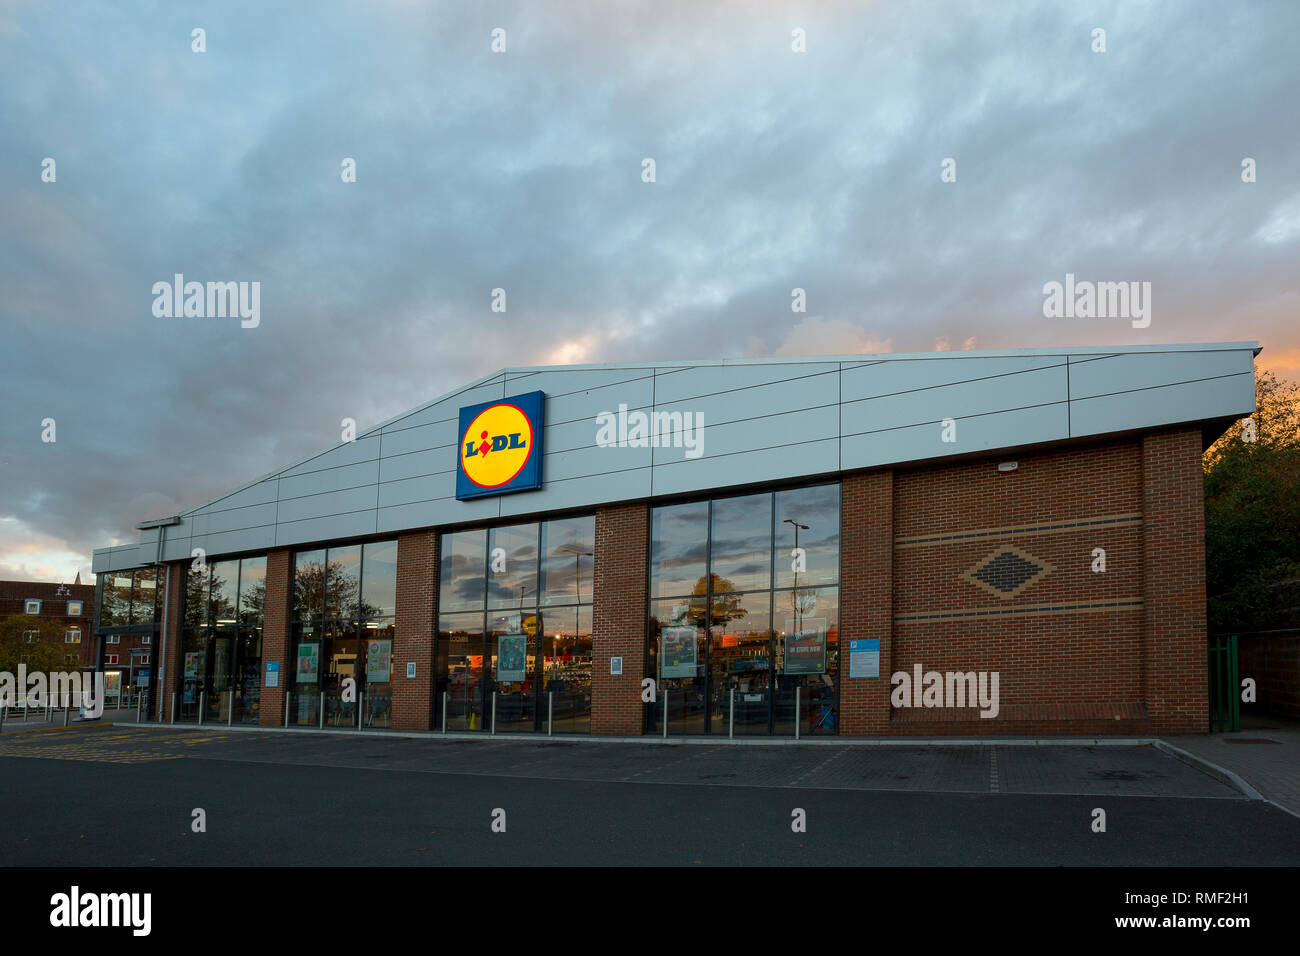 Supermarket, Lidl, Newport, Isle of Wight, Engerland, UK, - Stock Image